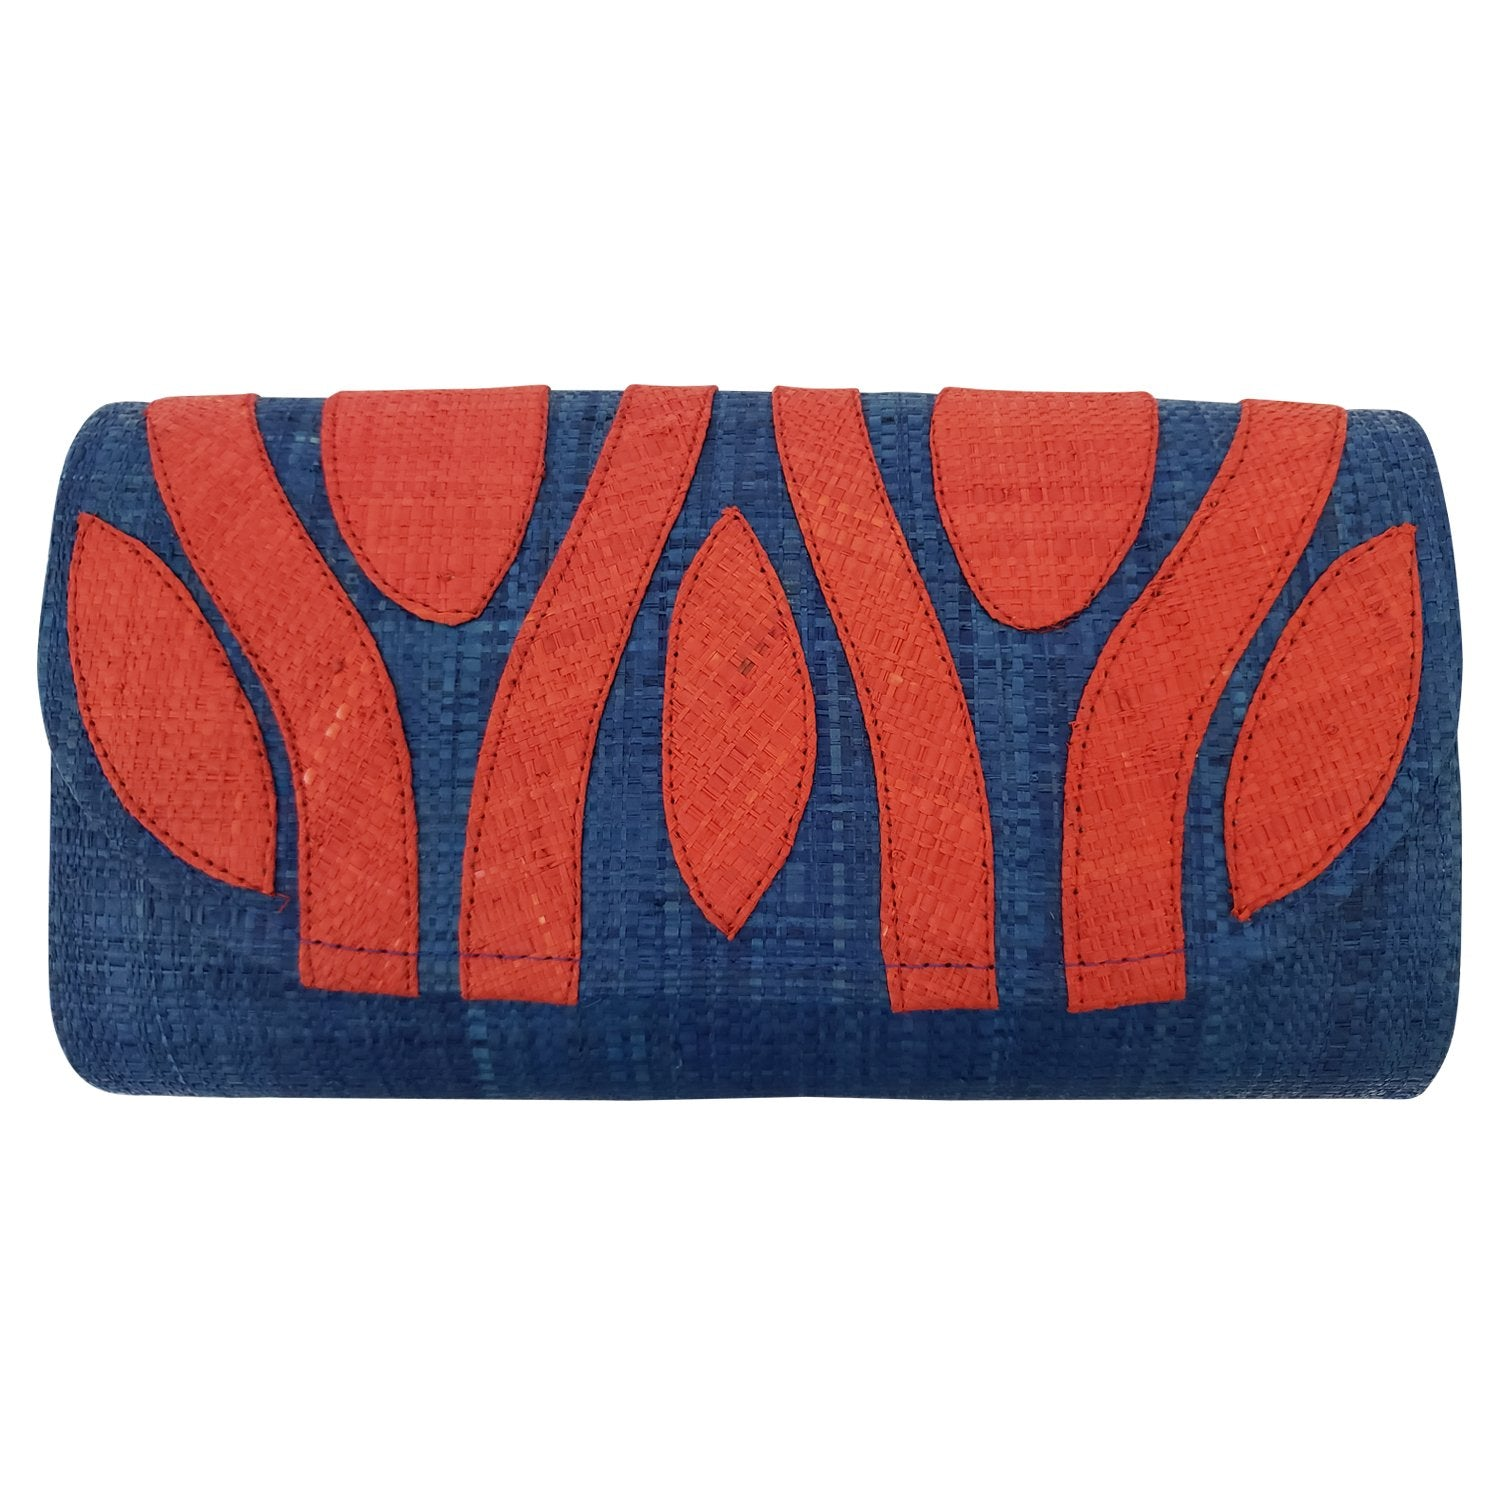 Authentic Handwoven Denim Blue Madagascar Raffia Clutch with Red-Orange Accents